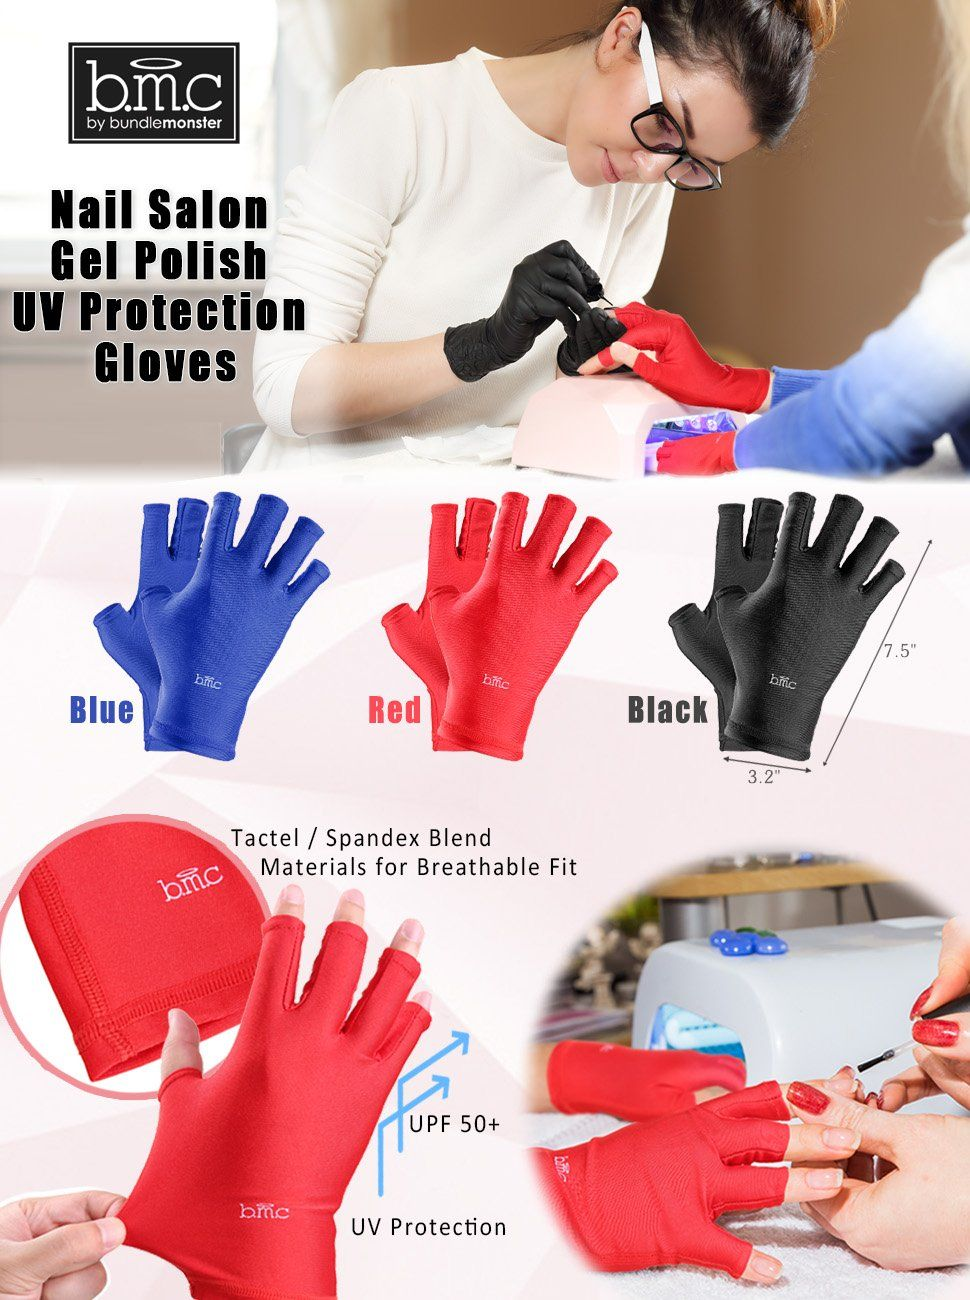 Amazon.com : BMC 3pk of Nail Salon Anti-UV Protection Gloves for LED ...